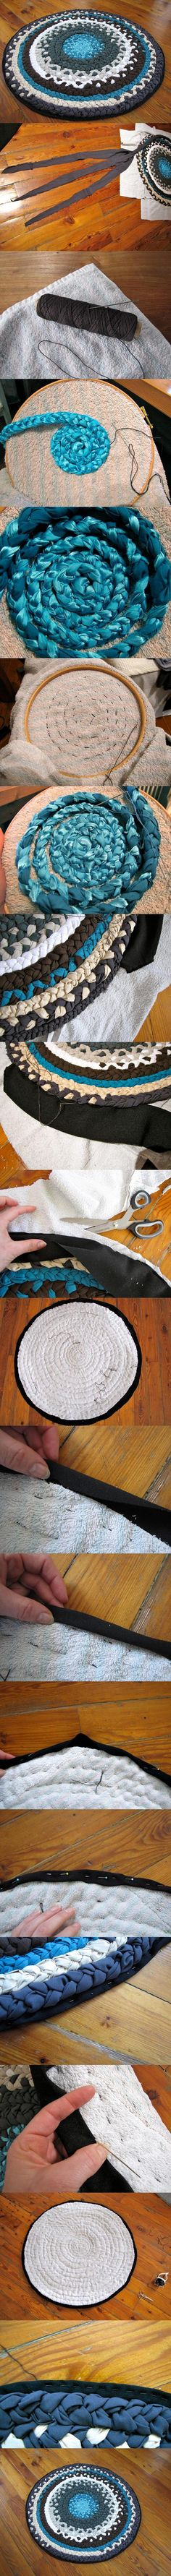 DIY Braided Fabric Rug DIY Projects | UsefulDIY.com. ALFOMBRA CON TRENZAS COSIDAS SOBRE TOALLA